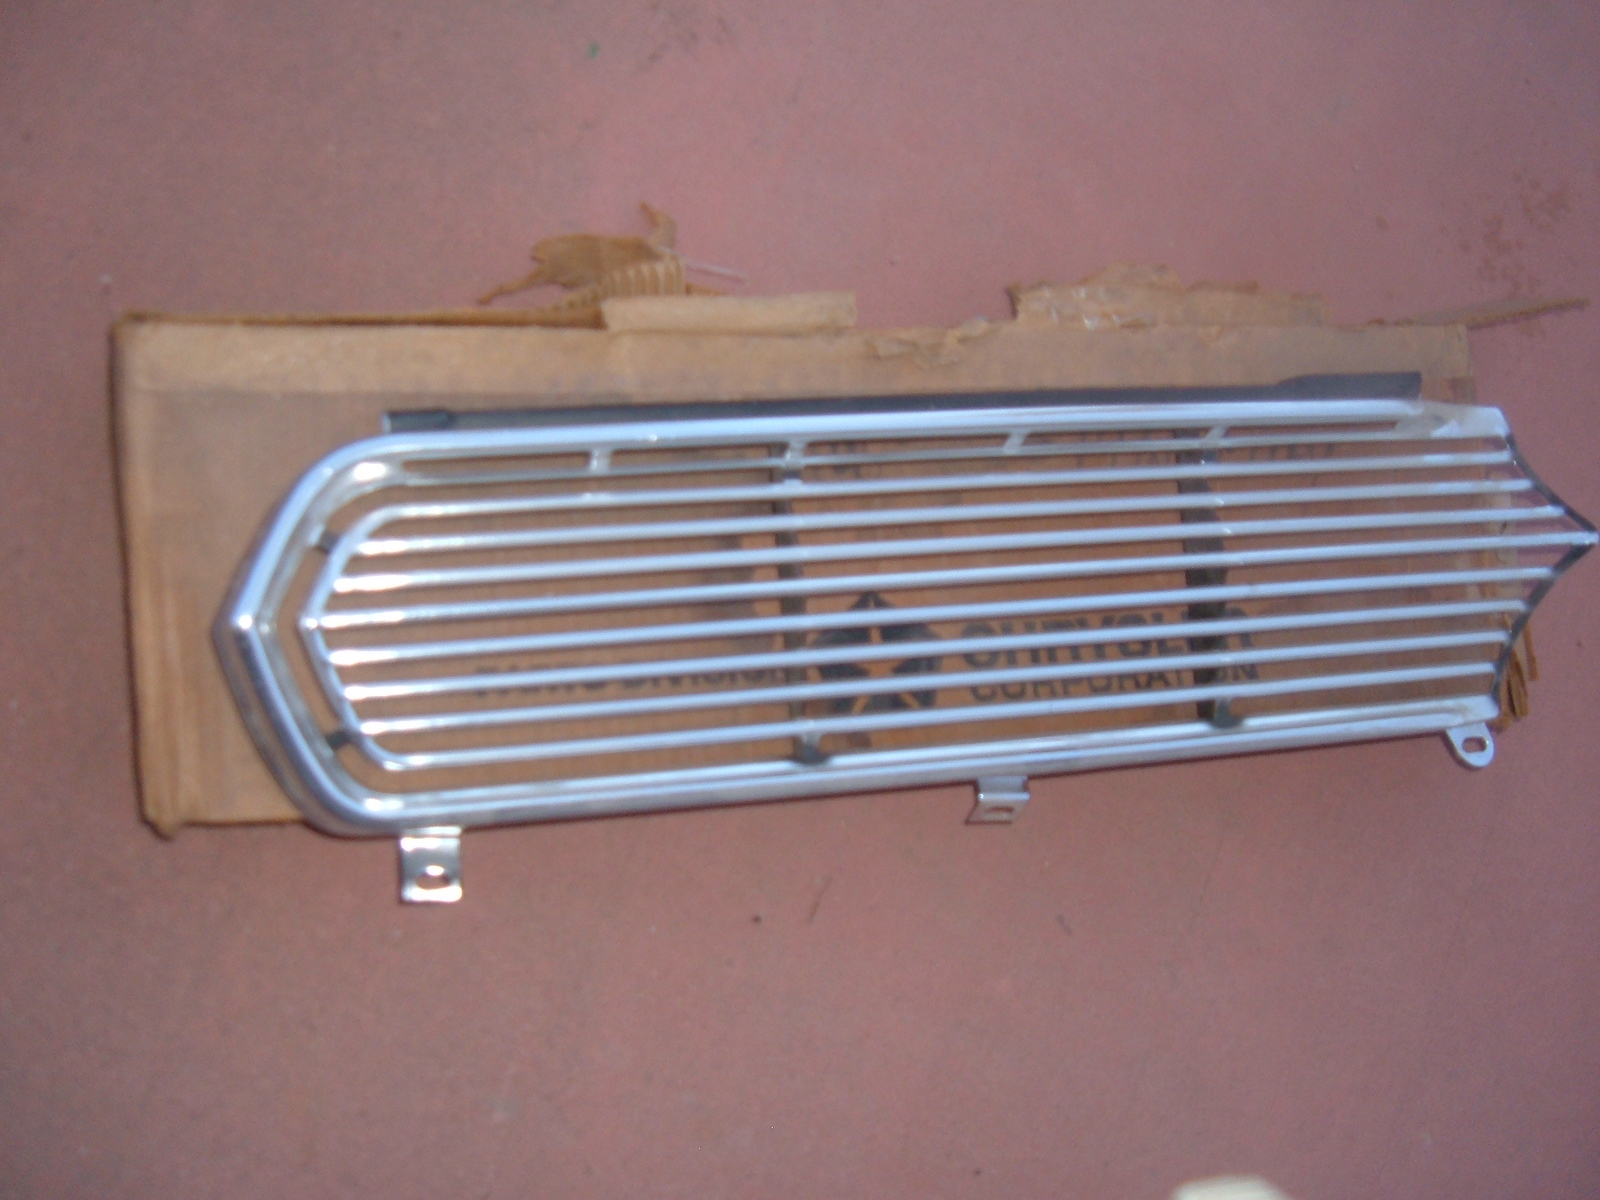 1966 plymouth fury grille assembly nos mopar # 2578221 (z 2578221)